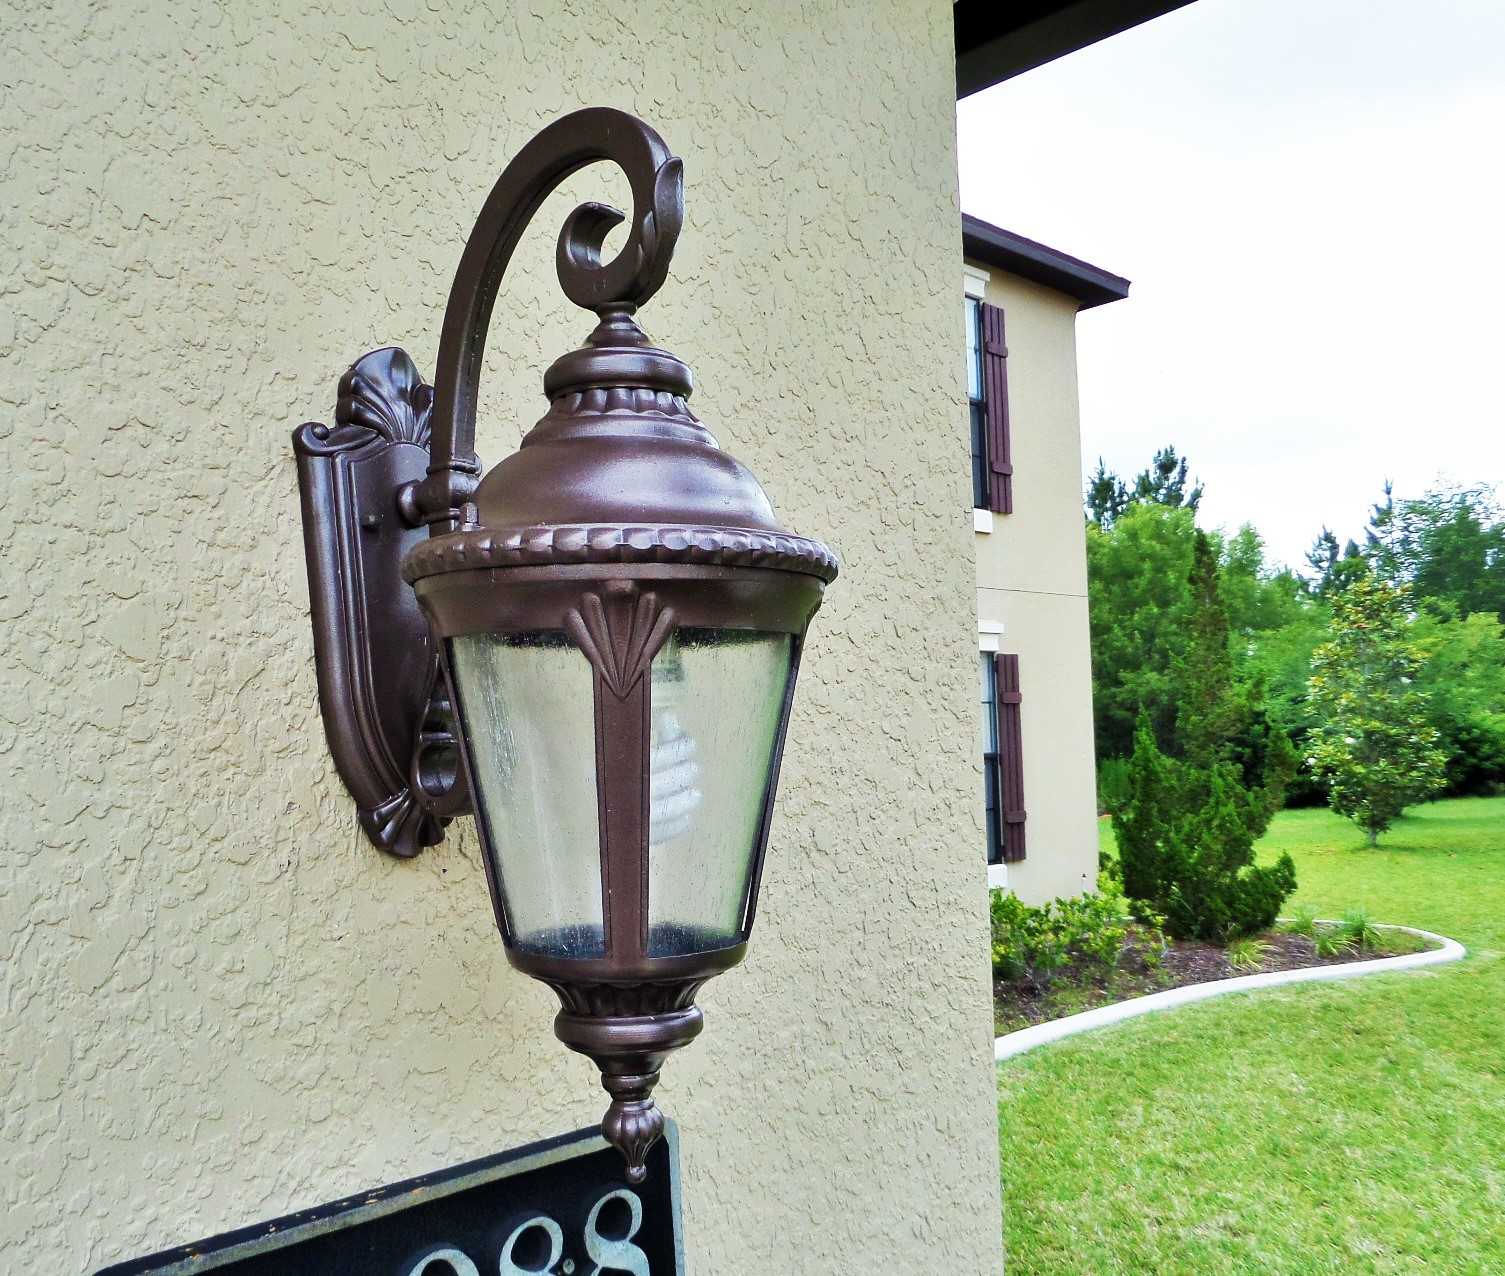 DIY Outdoor Lighting Without Electricity  DIY Summer Projects Be My Guest With Denise